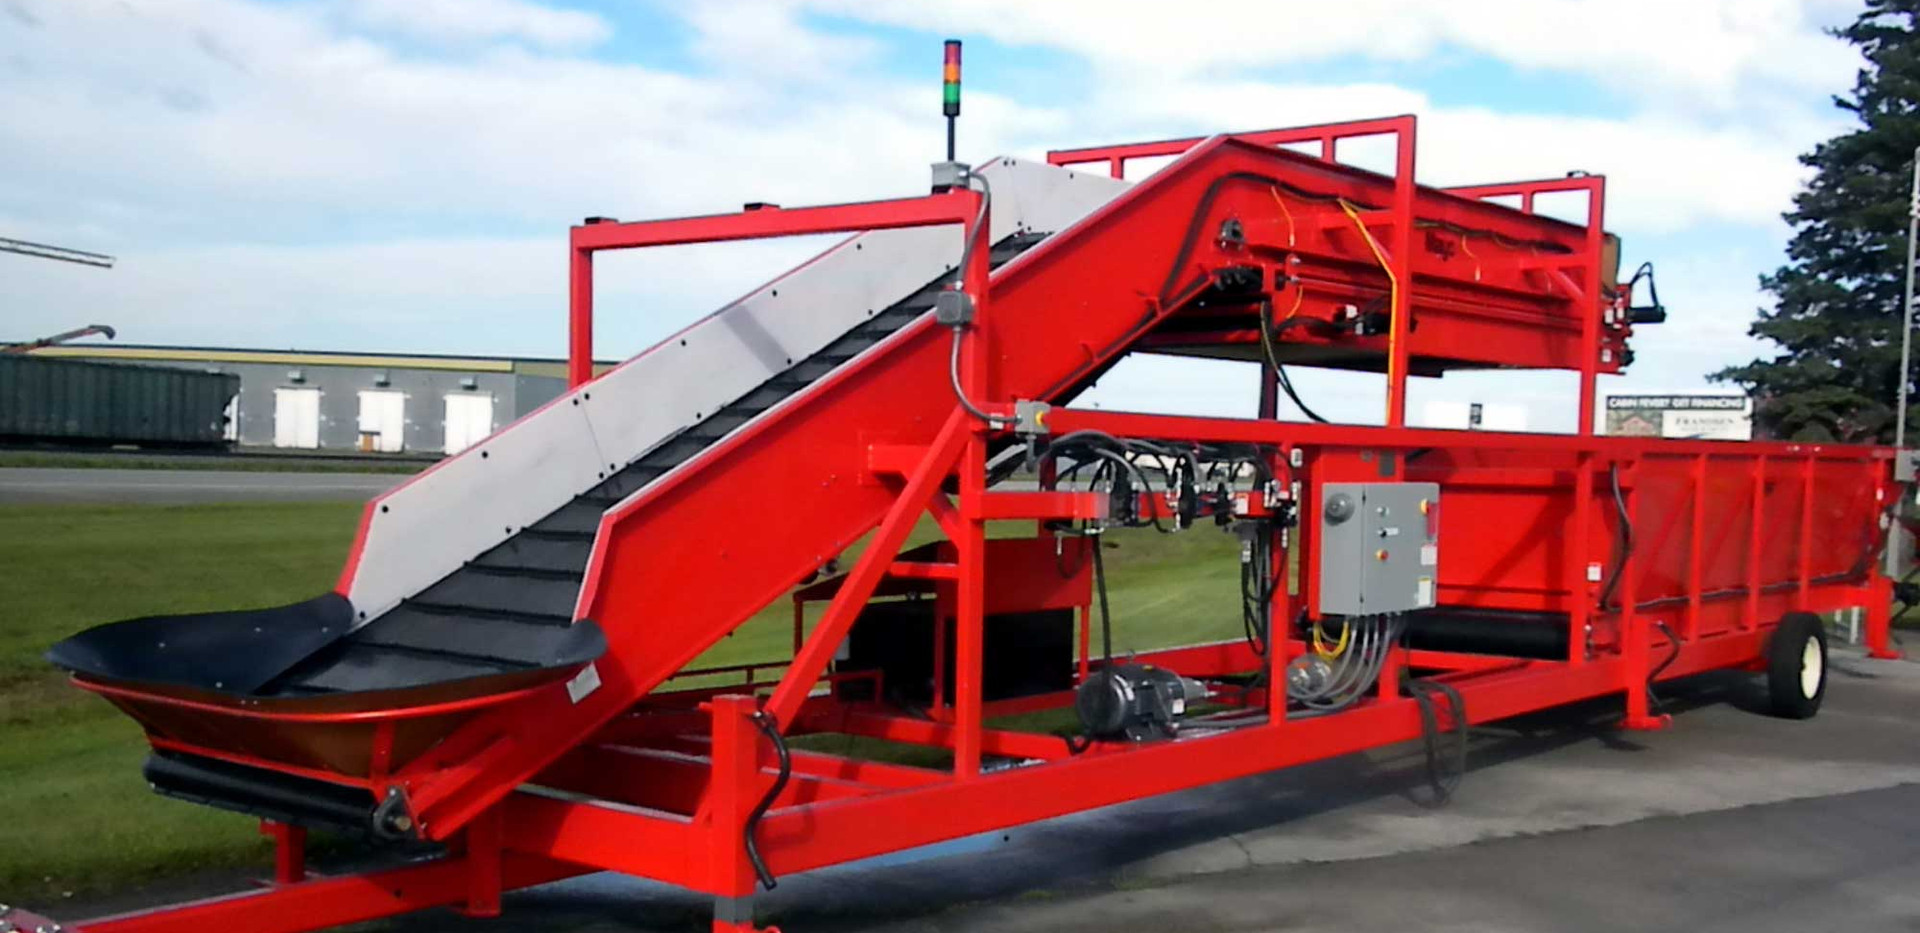 Mayo Potato Surge Conveyor and Hopper